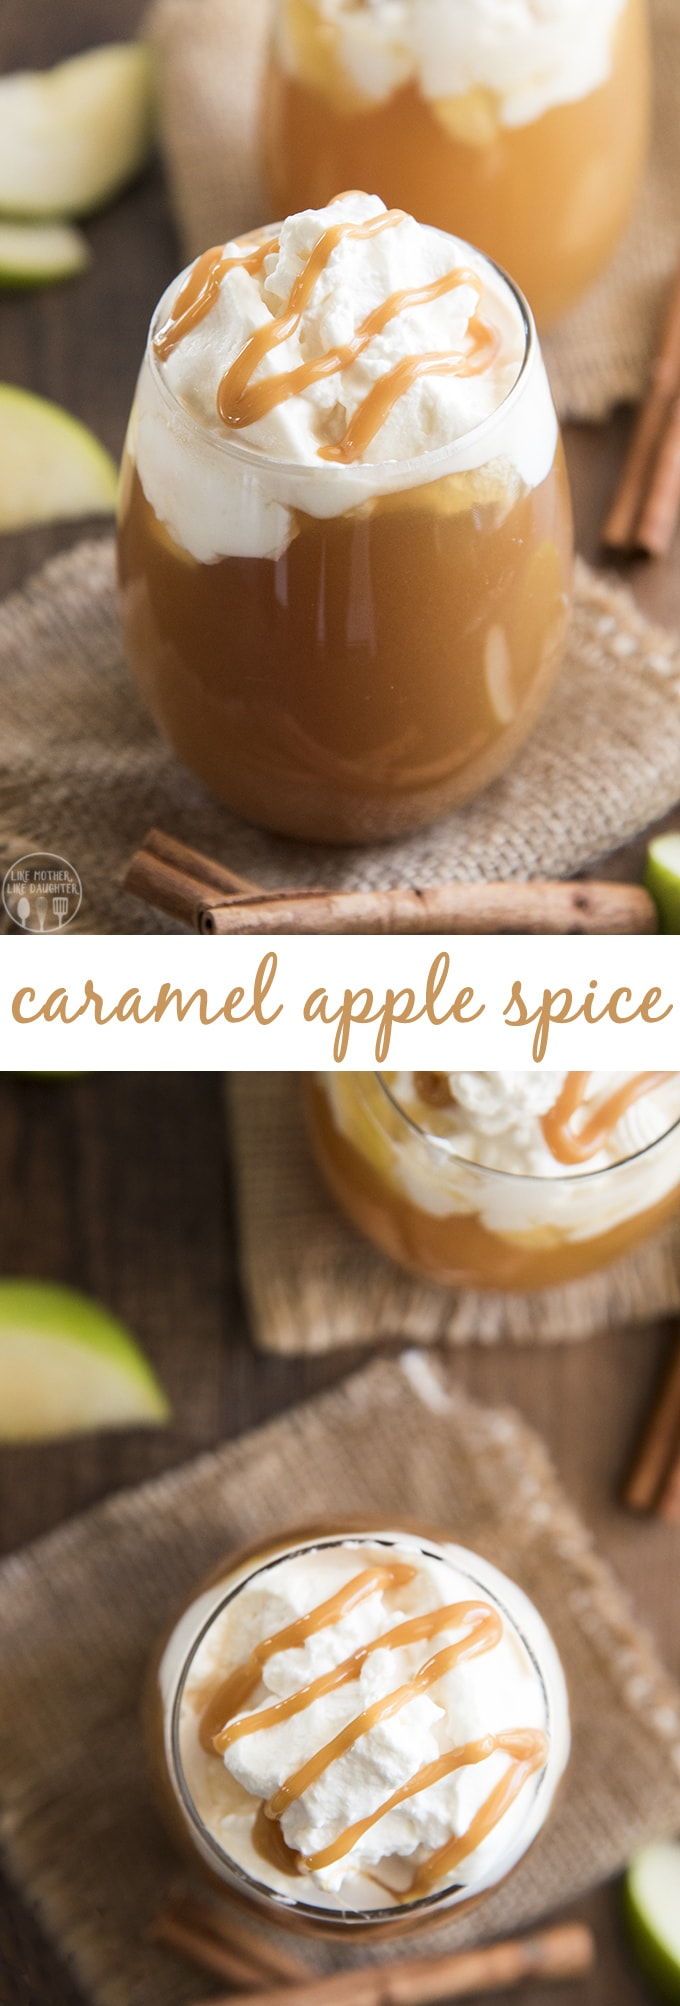 Copycat Starbuck's caramel apple spice tastes just like the original! With a homemade sweet cinnamon syrup, hot apple juice, topped with whipped cream and a drizzle of caramel sauce this drink is the perfect thing to warm up with!